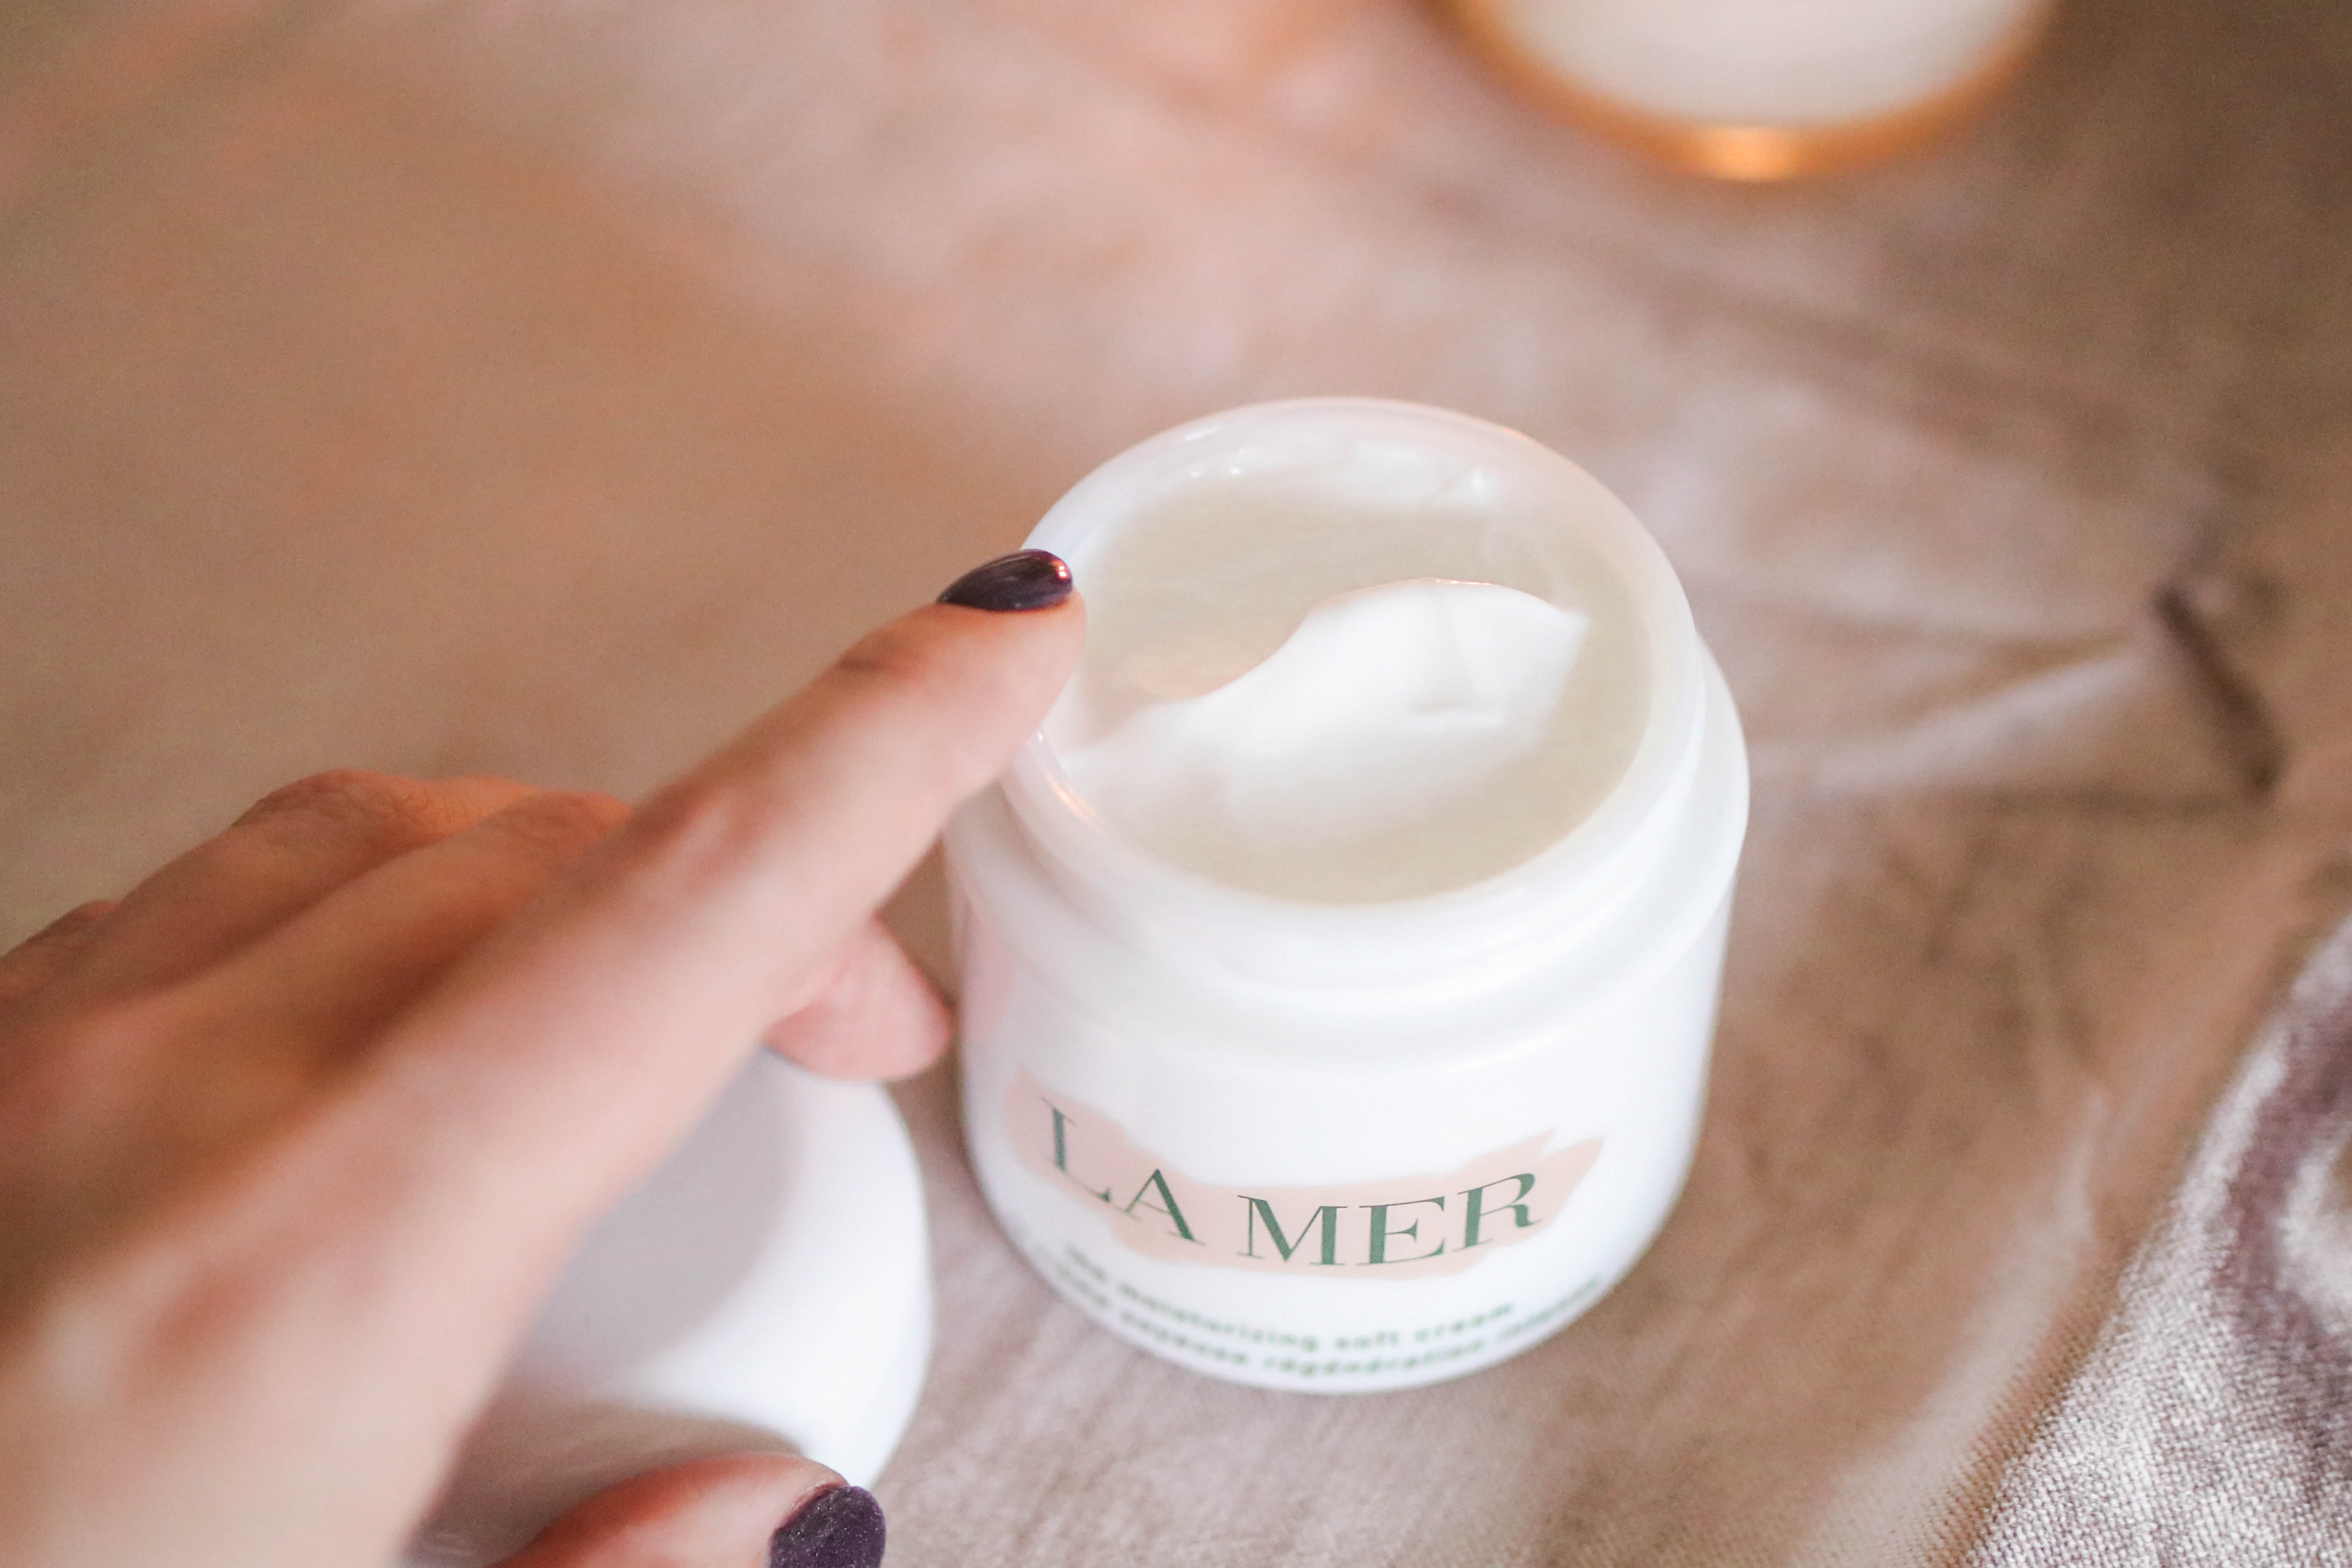 la-mer-soft-cream-review